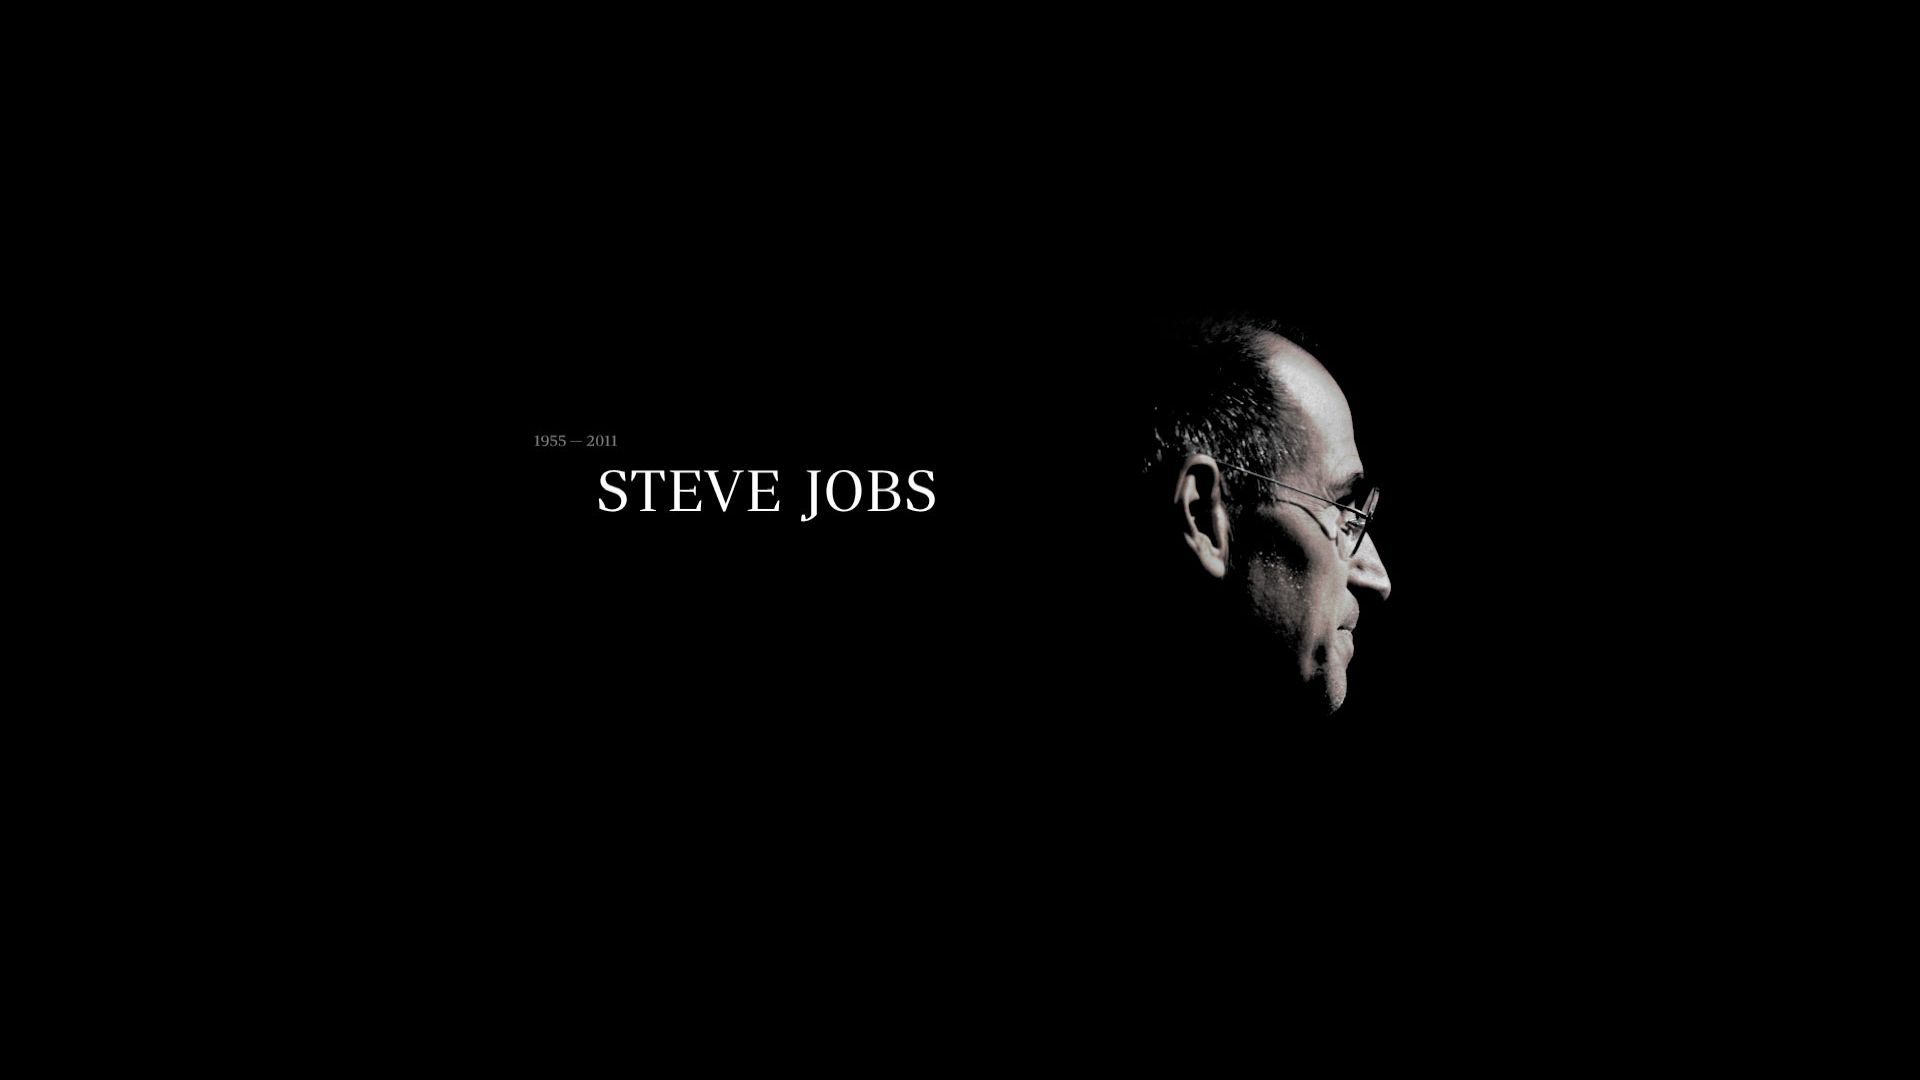 Success Quotes Hd Wallpapers 1080p Rip Steve Jobs Celebrity